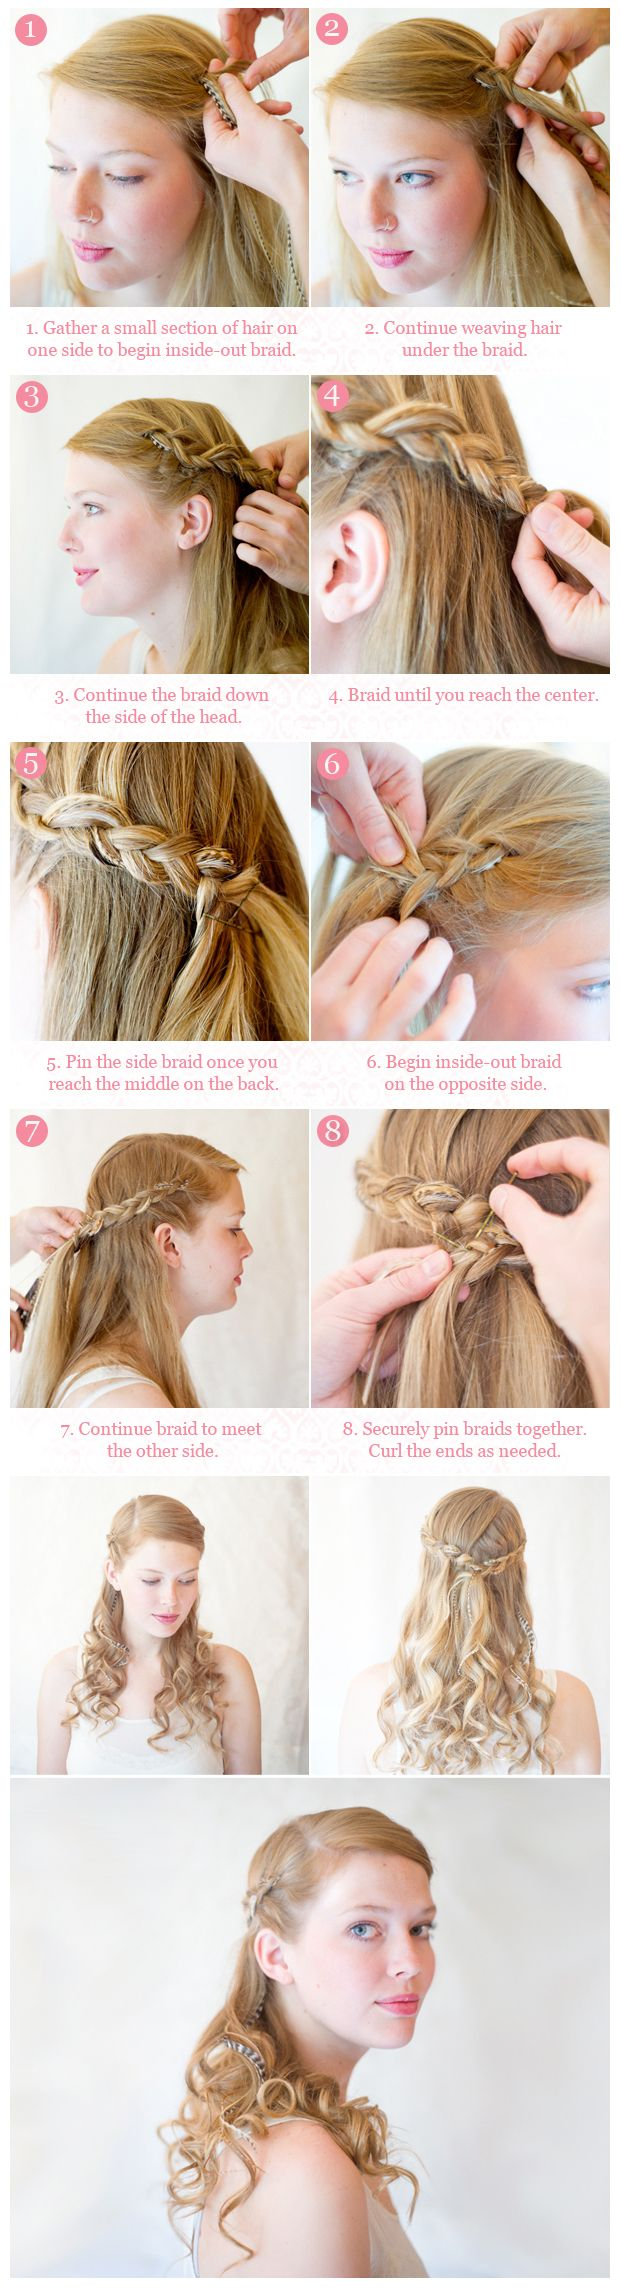 Inside out half up braid tutorial with feathers from neal fine diy inside out half up braid hairstyle diy easy diy diy beauty diy hair diy fashion beauty diy diy style diy hair style solutioingenieria Gallery